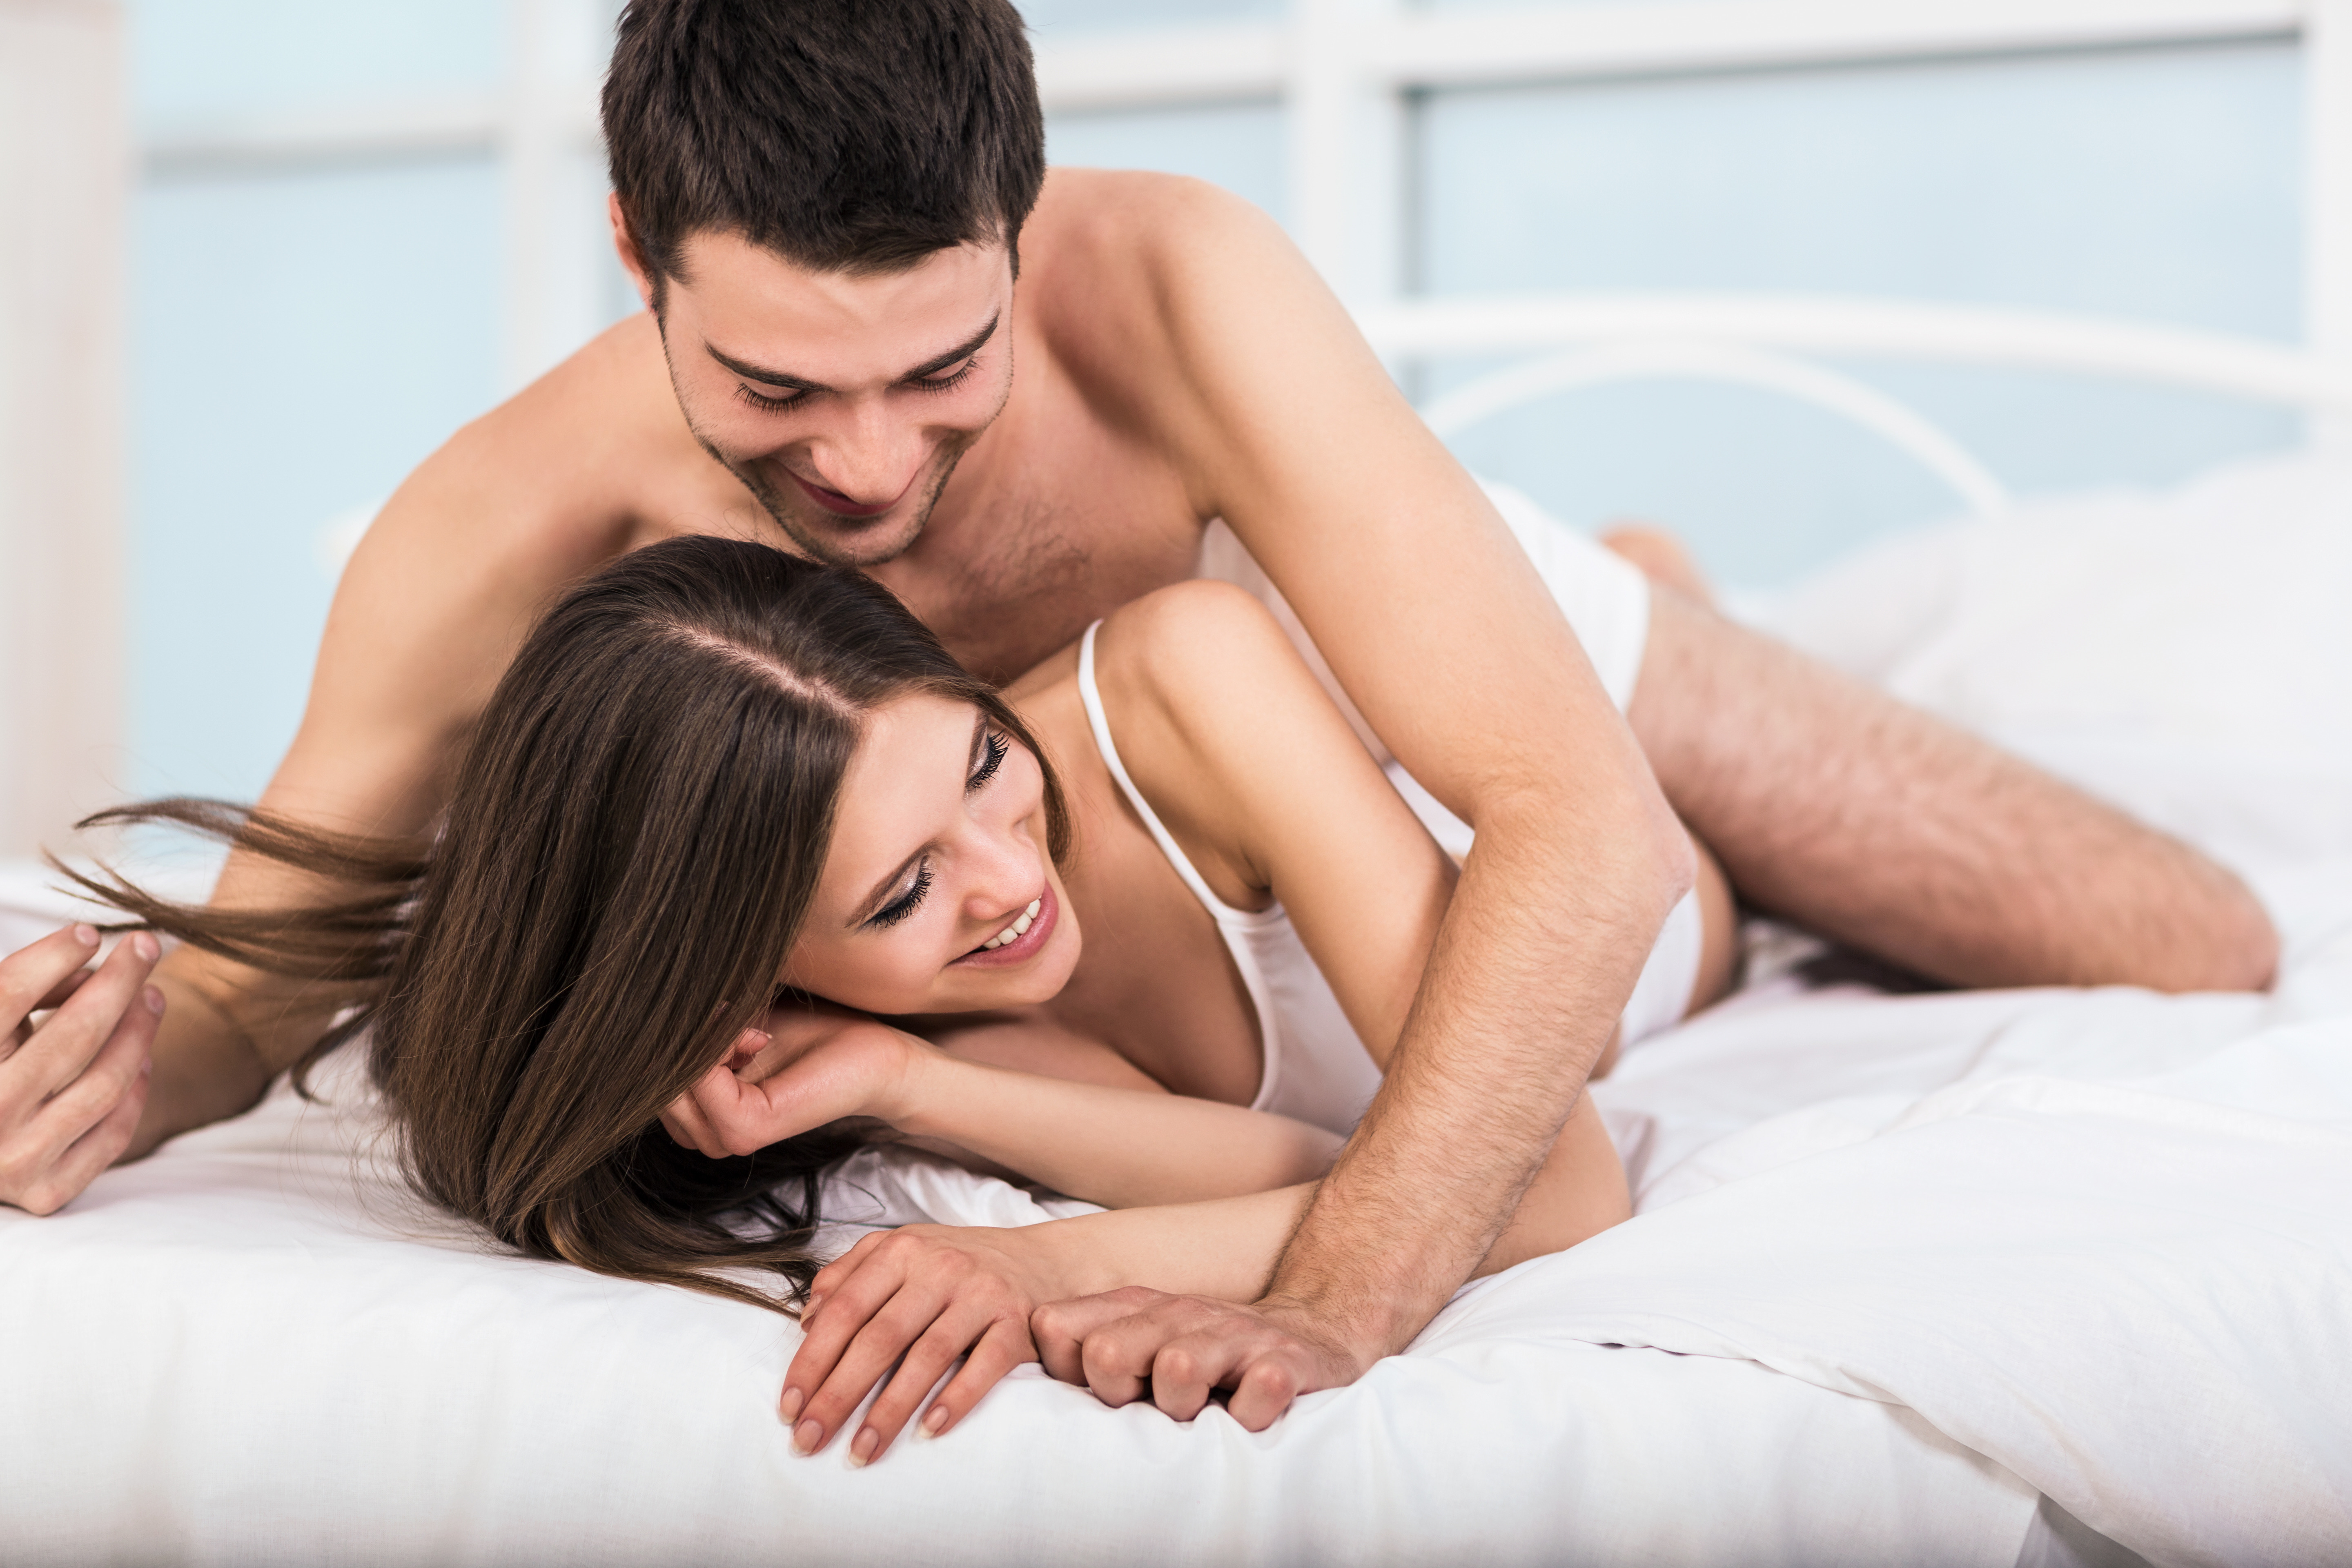 Three things men secretly want in bed